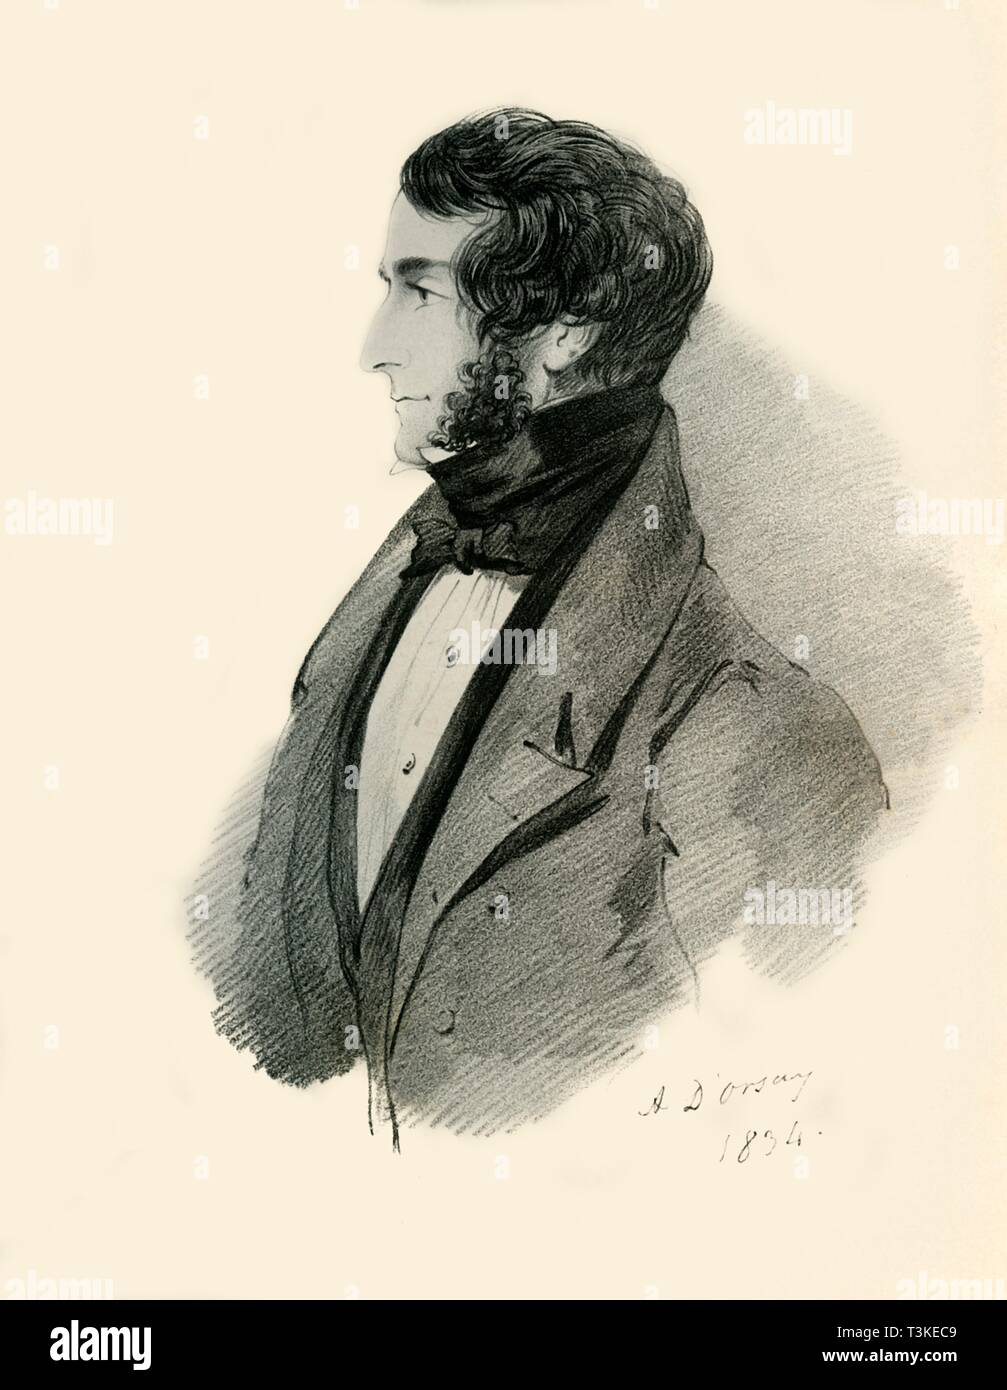 """Colonel John Lyster, 1834. Portrait of John Lyster, British soldier, (died 1840). From """"Portraits by Count D'Orsay"""", an album assembled by Lady Georgiana Codrington. [1850s] - Stock Image"""